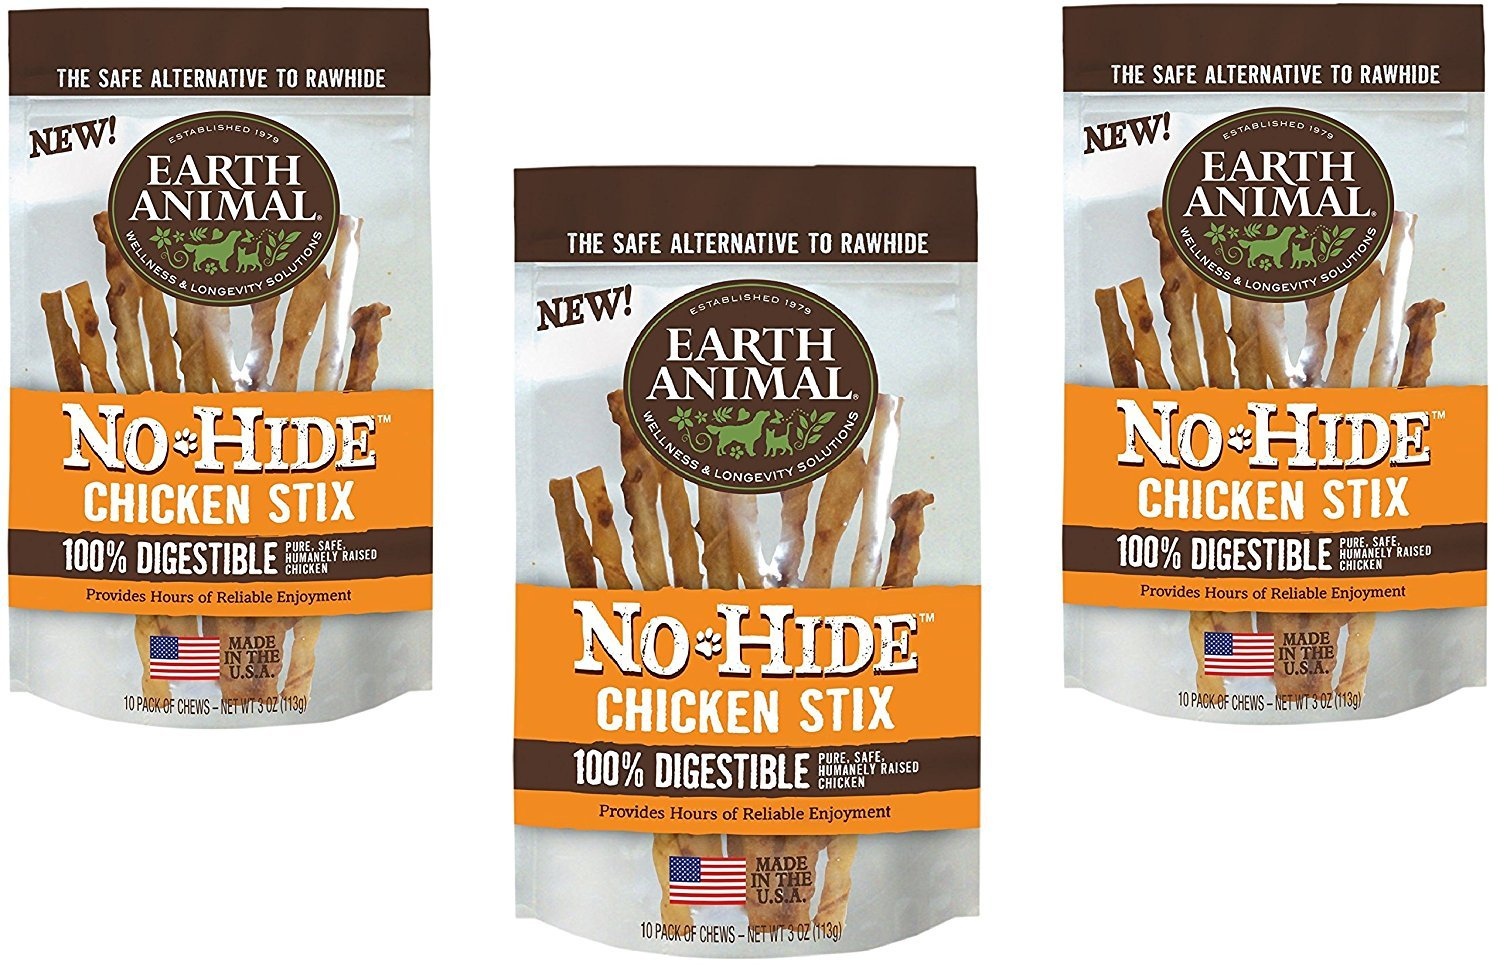 30-Count Earth Animal No-Hide Chicken Stix (3 Packs with 10 Stix Each) by Earth Animal